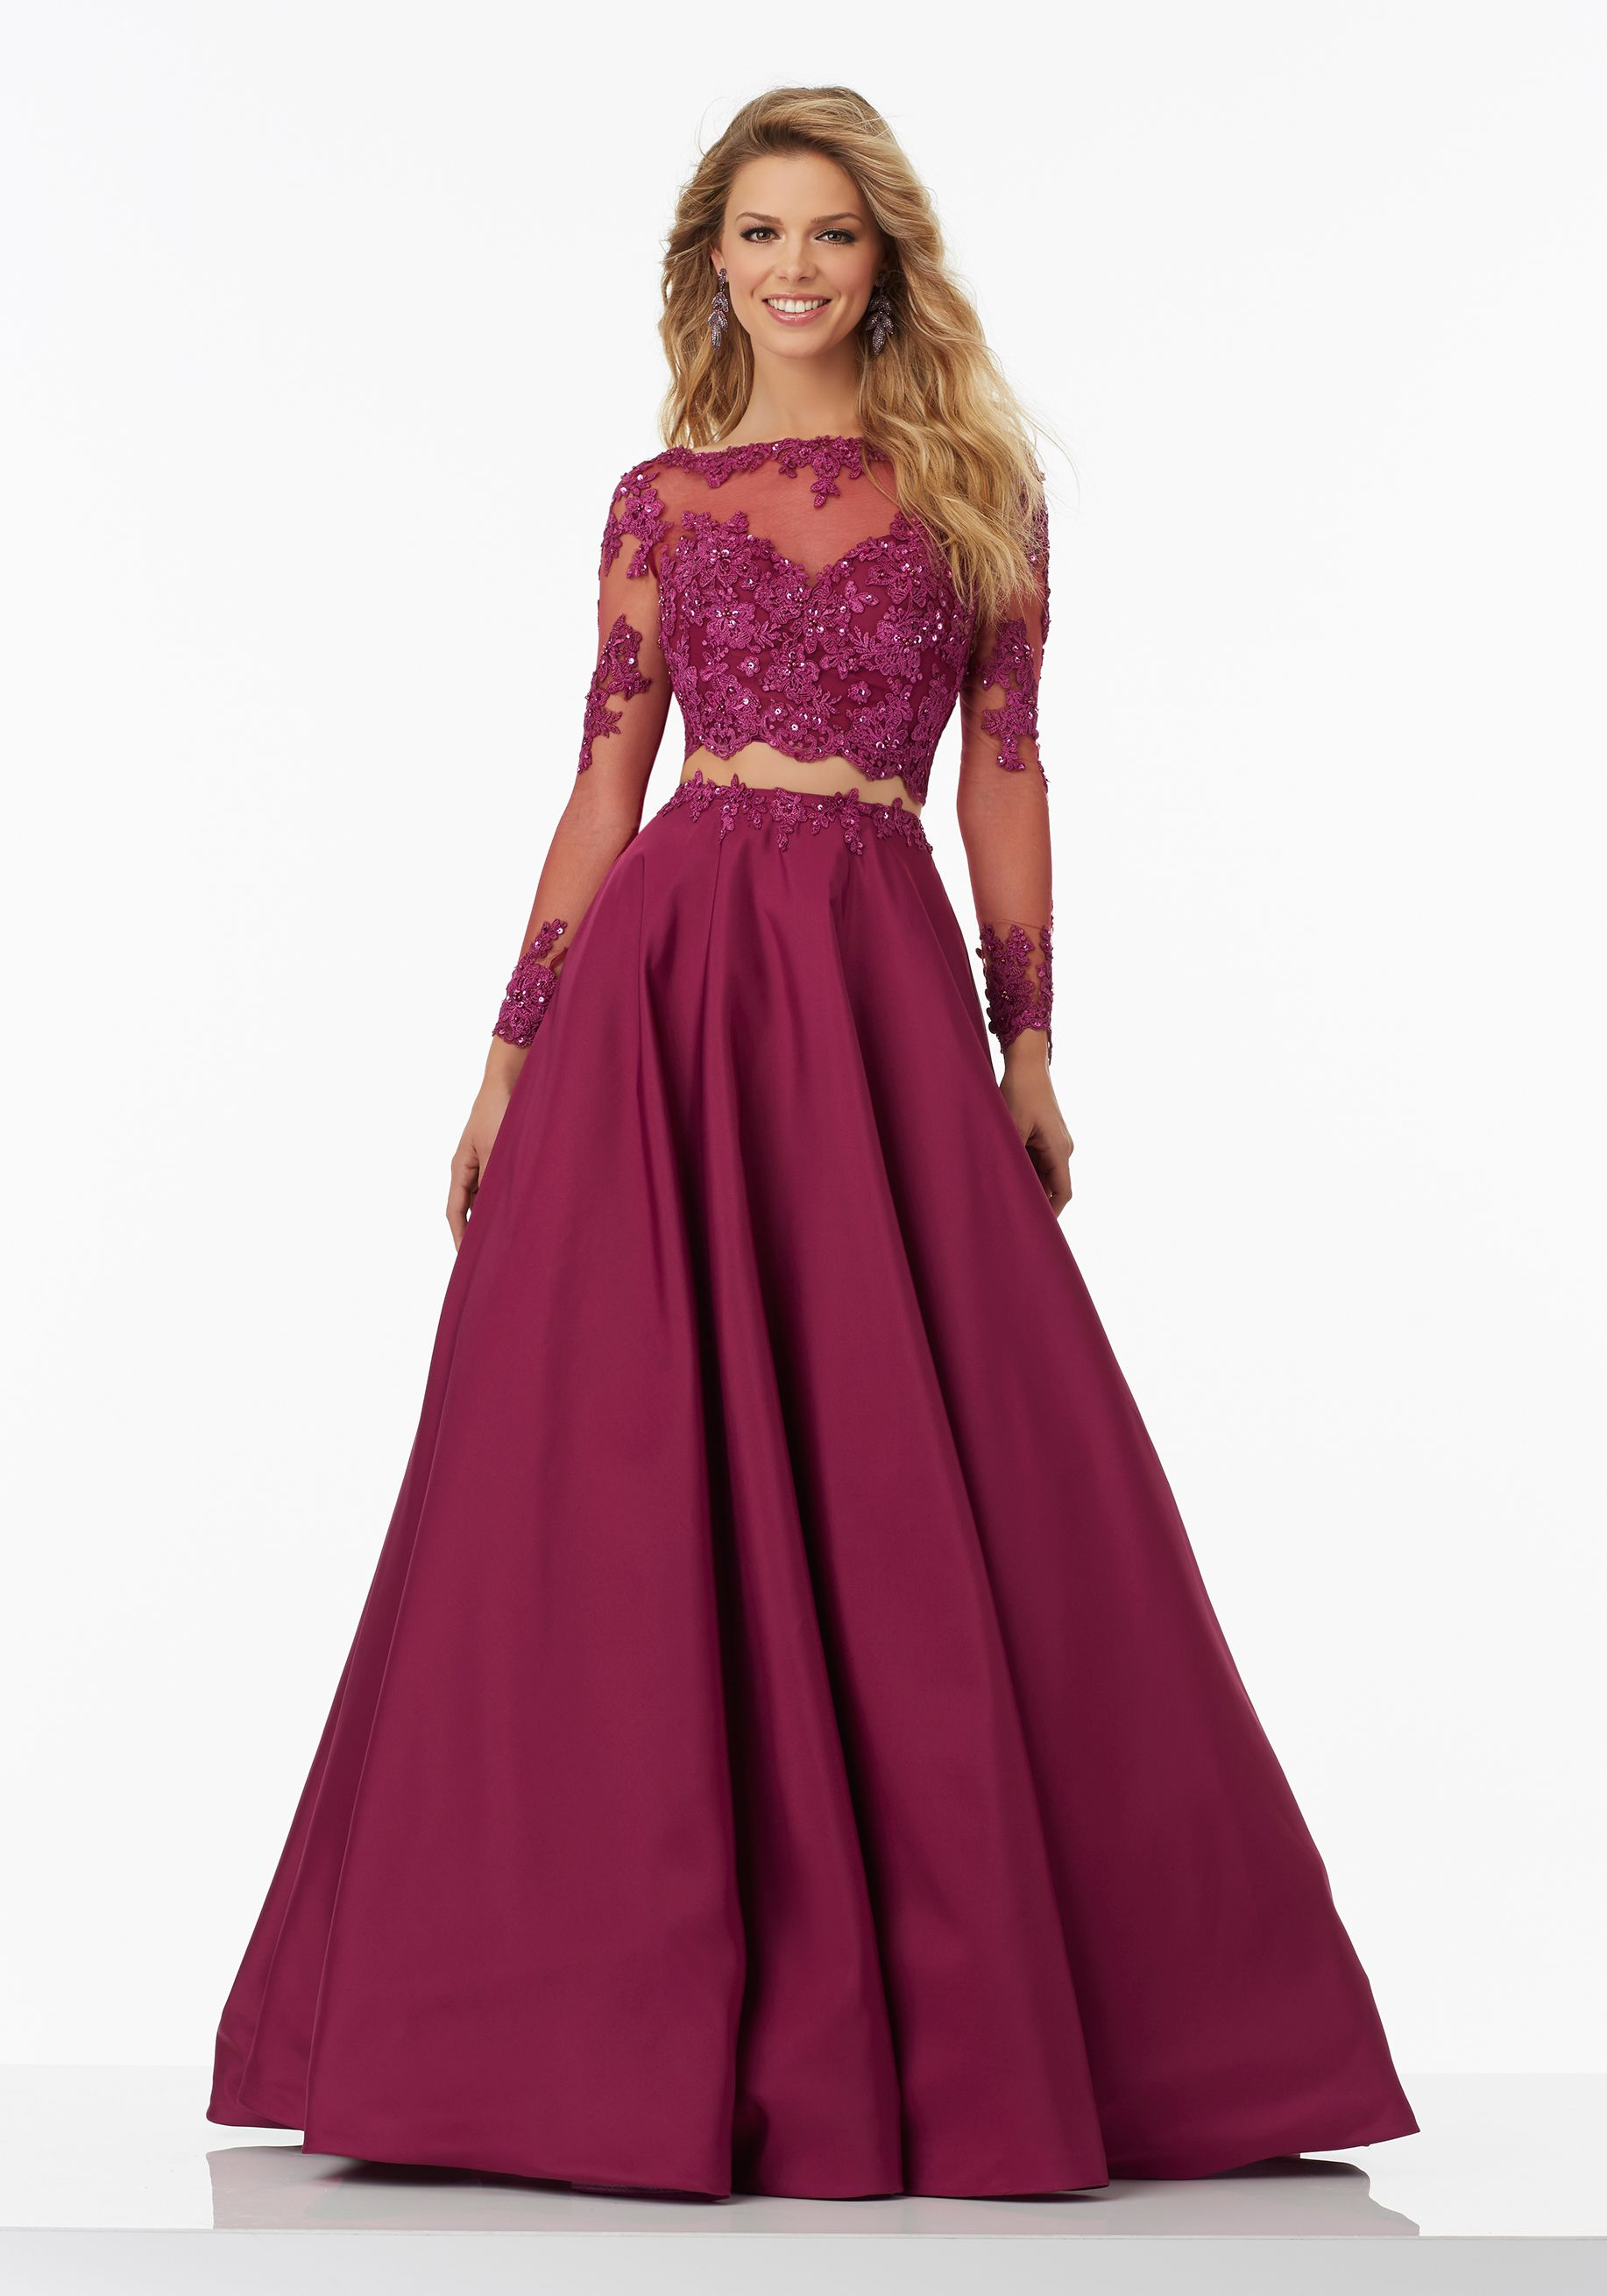 Two-Piece Prom Dress with Long Sleeved Lace on Net Top and A-Line ...